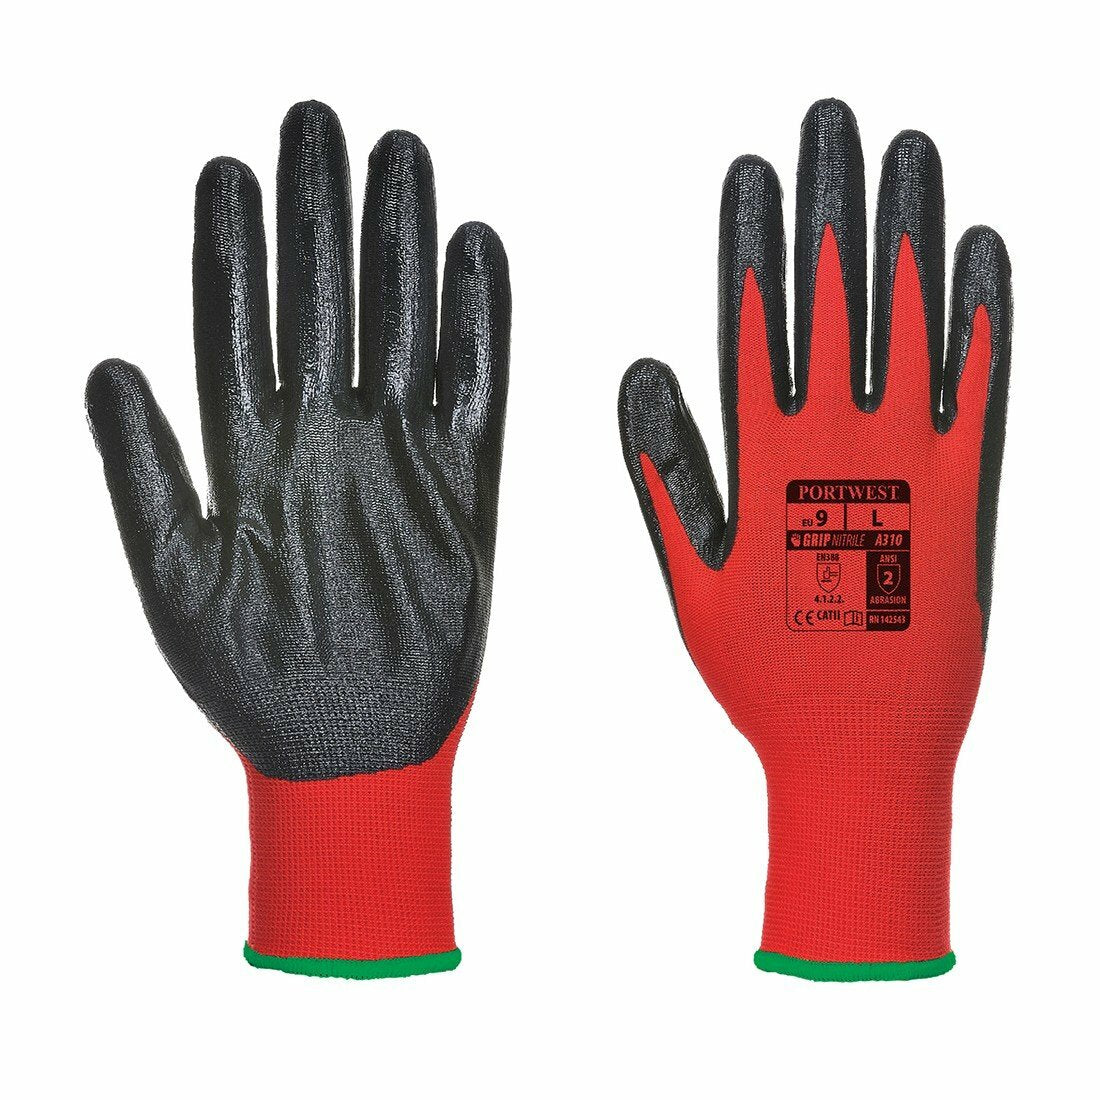 A310 Flexo Grip Nitrile Glove